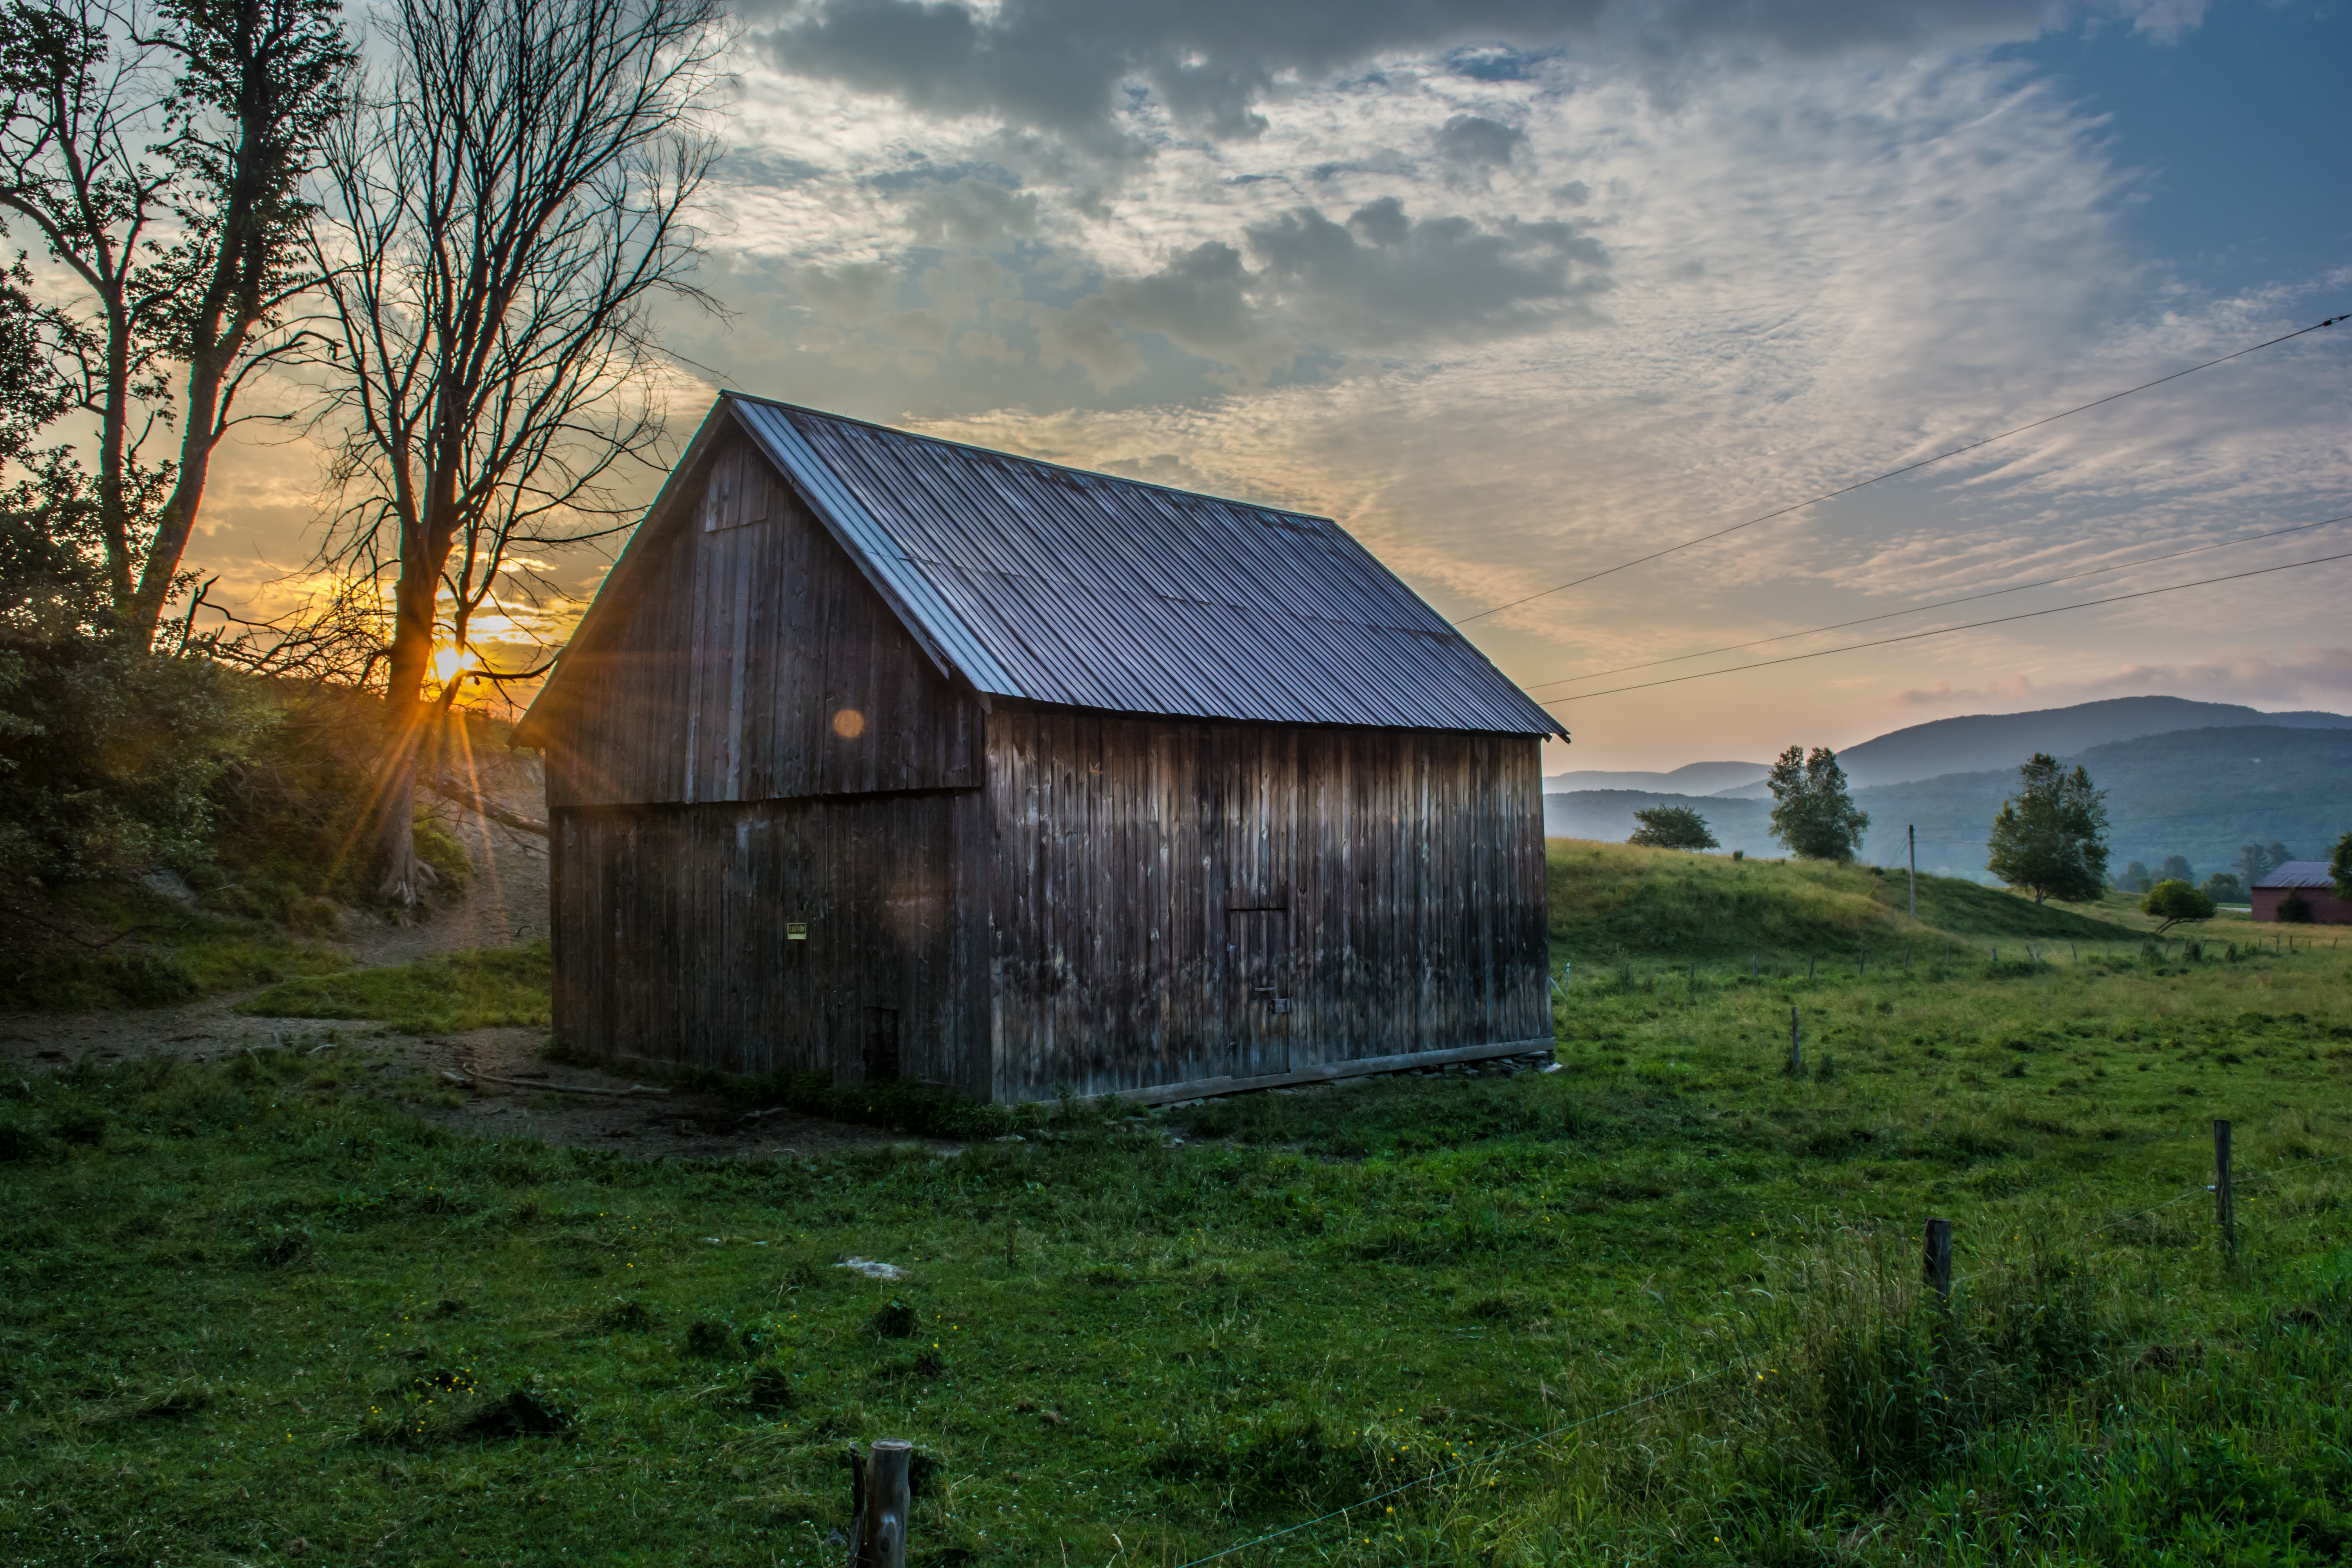 brown wooden shed surrounded by green grass